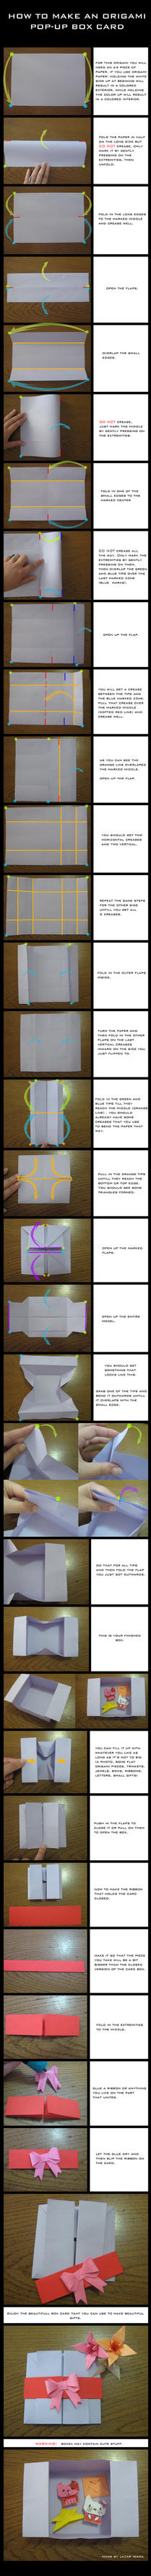 TUTORIAL: Origami Pop-up Box Card by DarkUmah